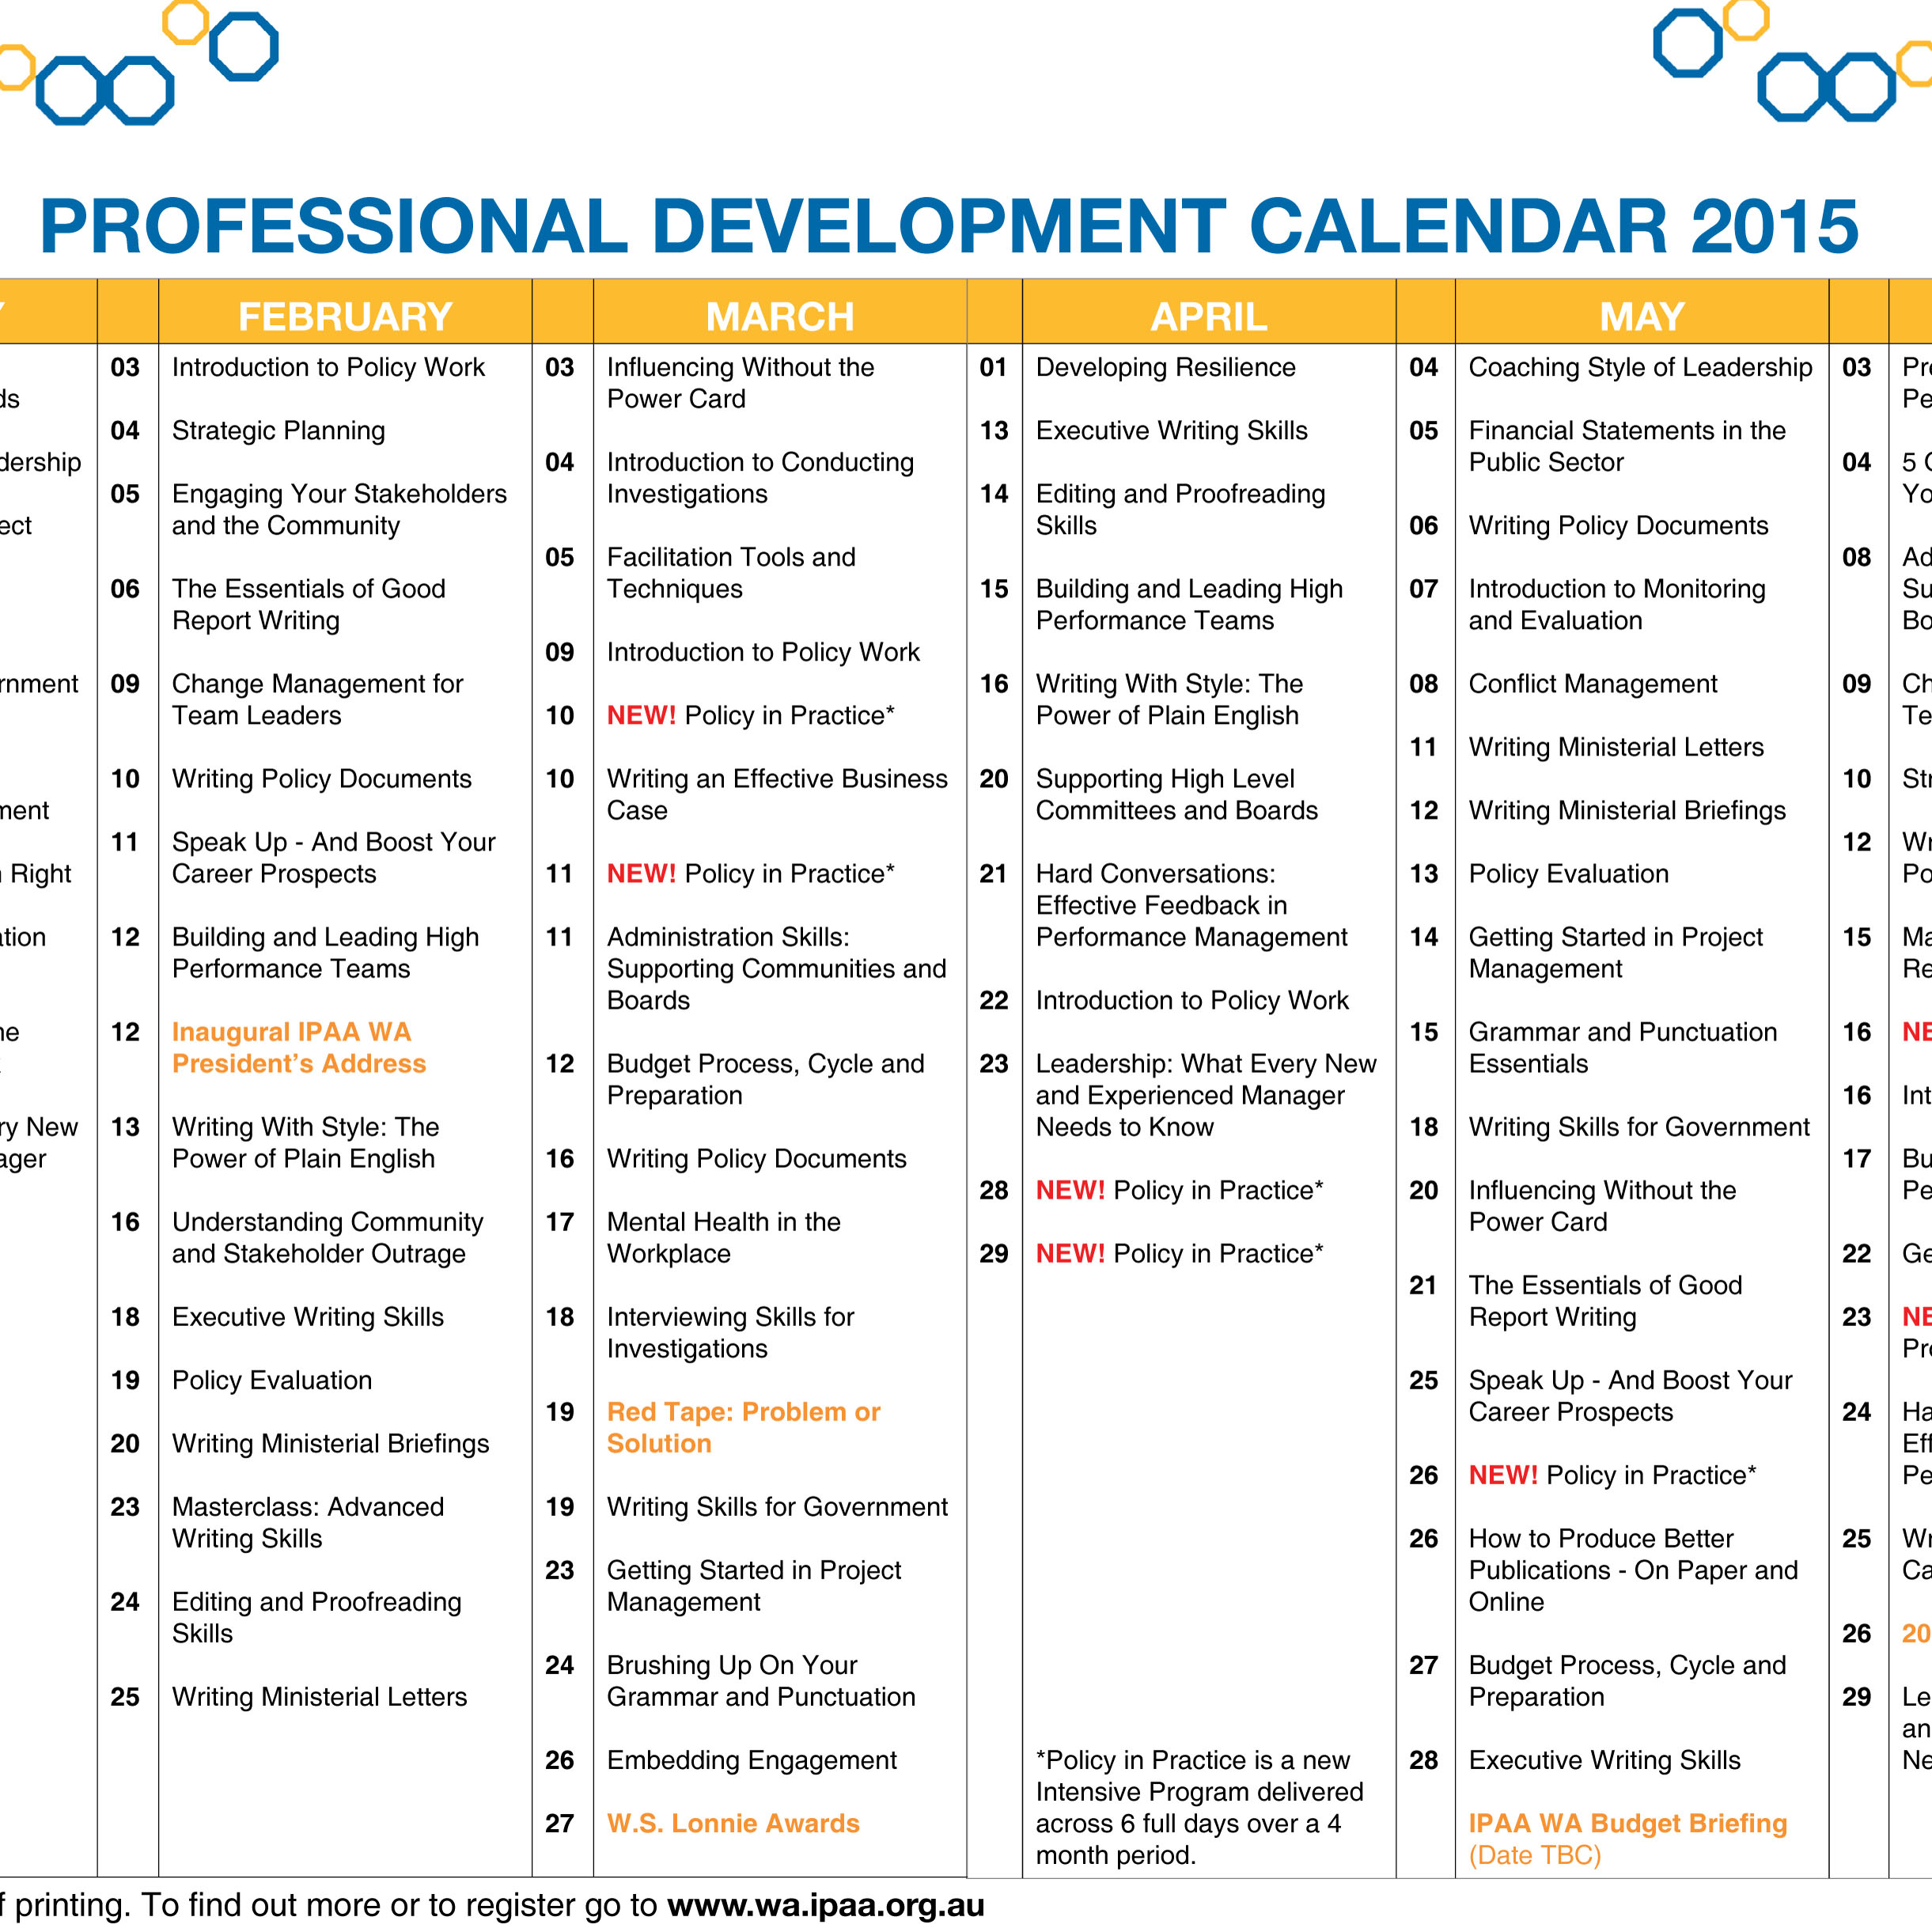 2019 JAN - JUN PD Calendar Now Available